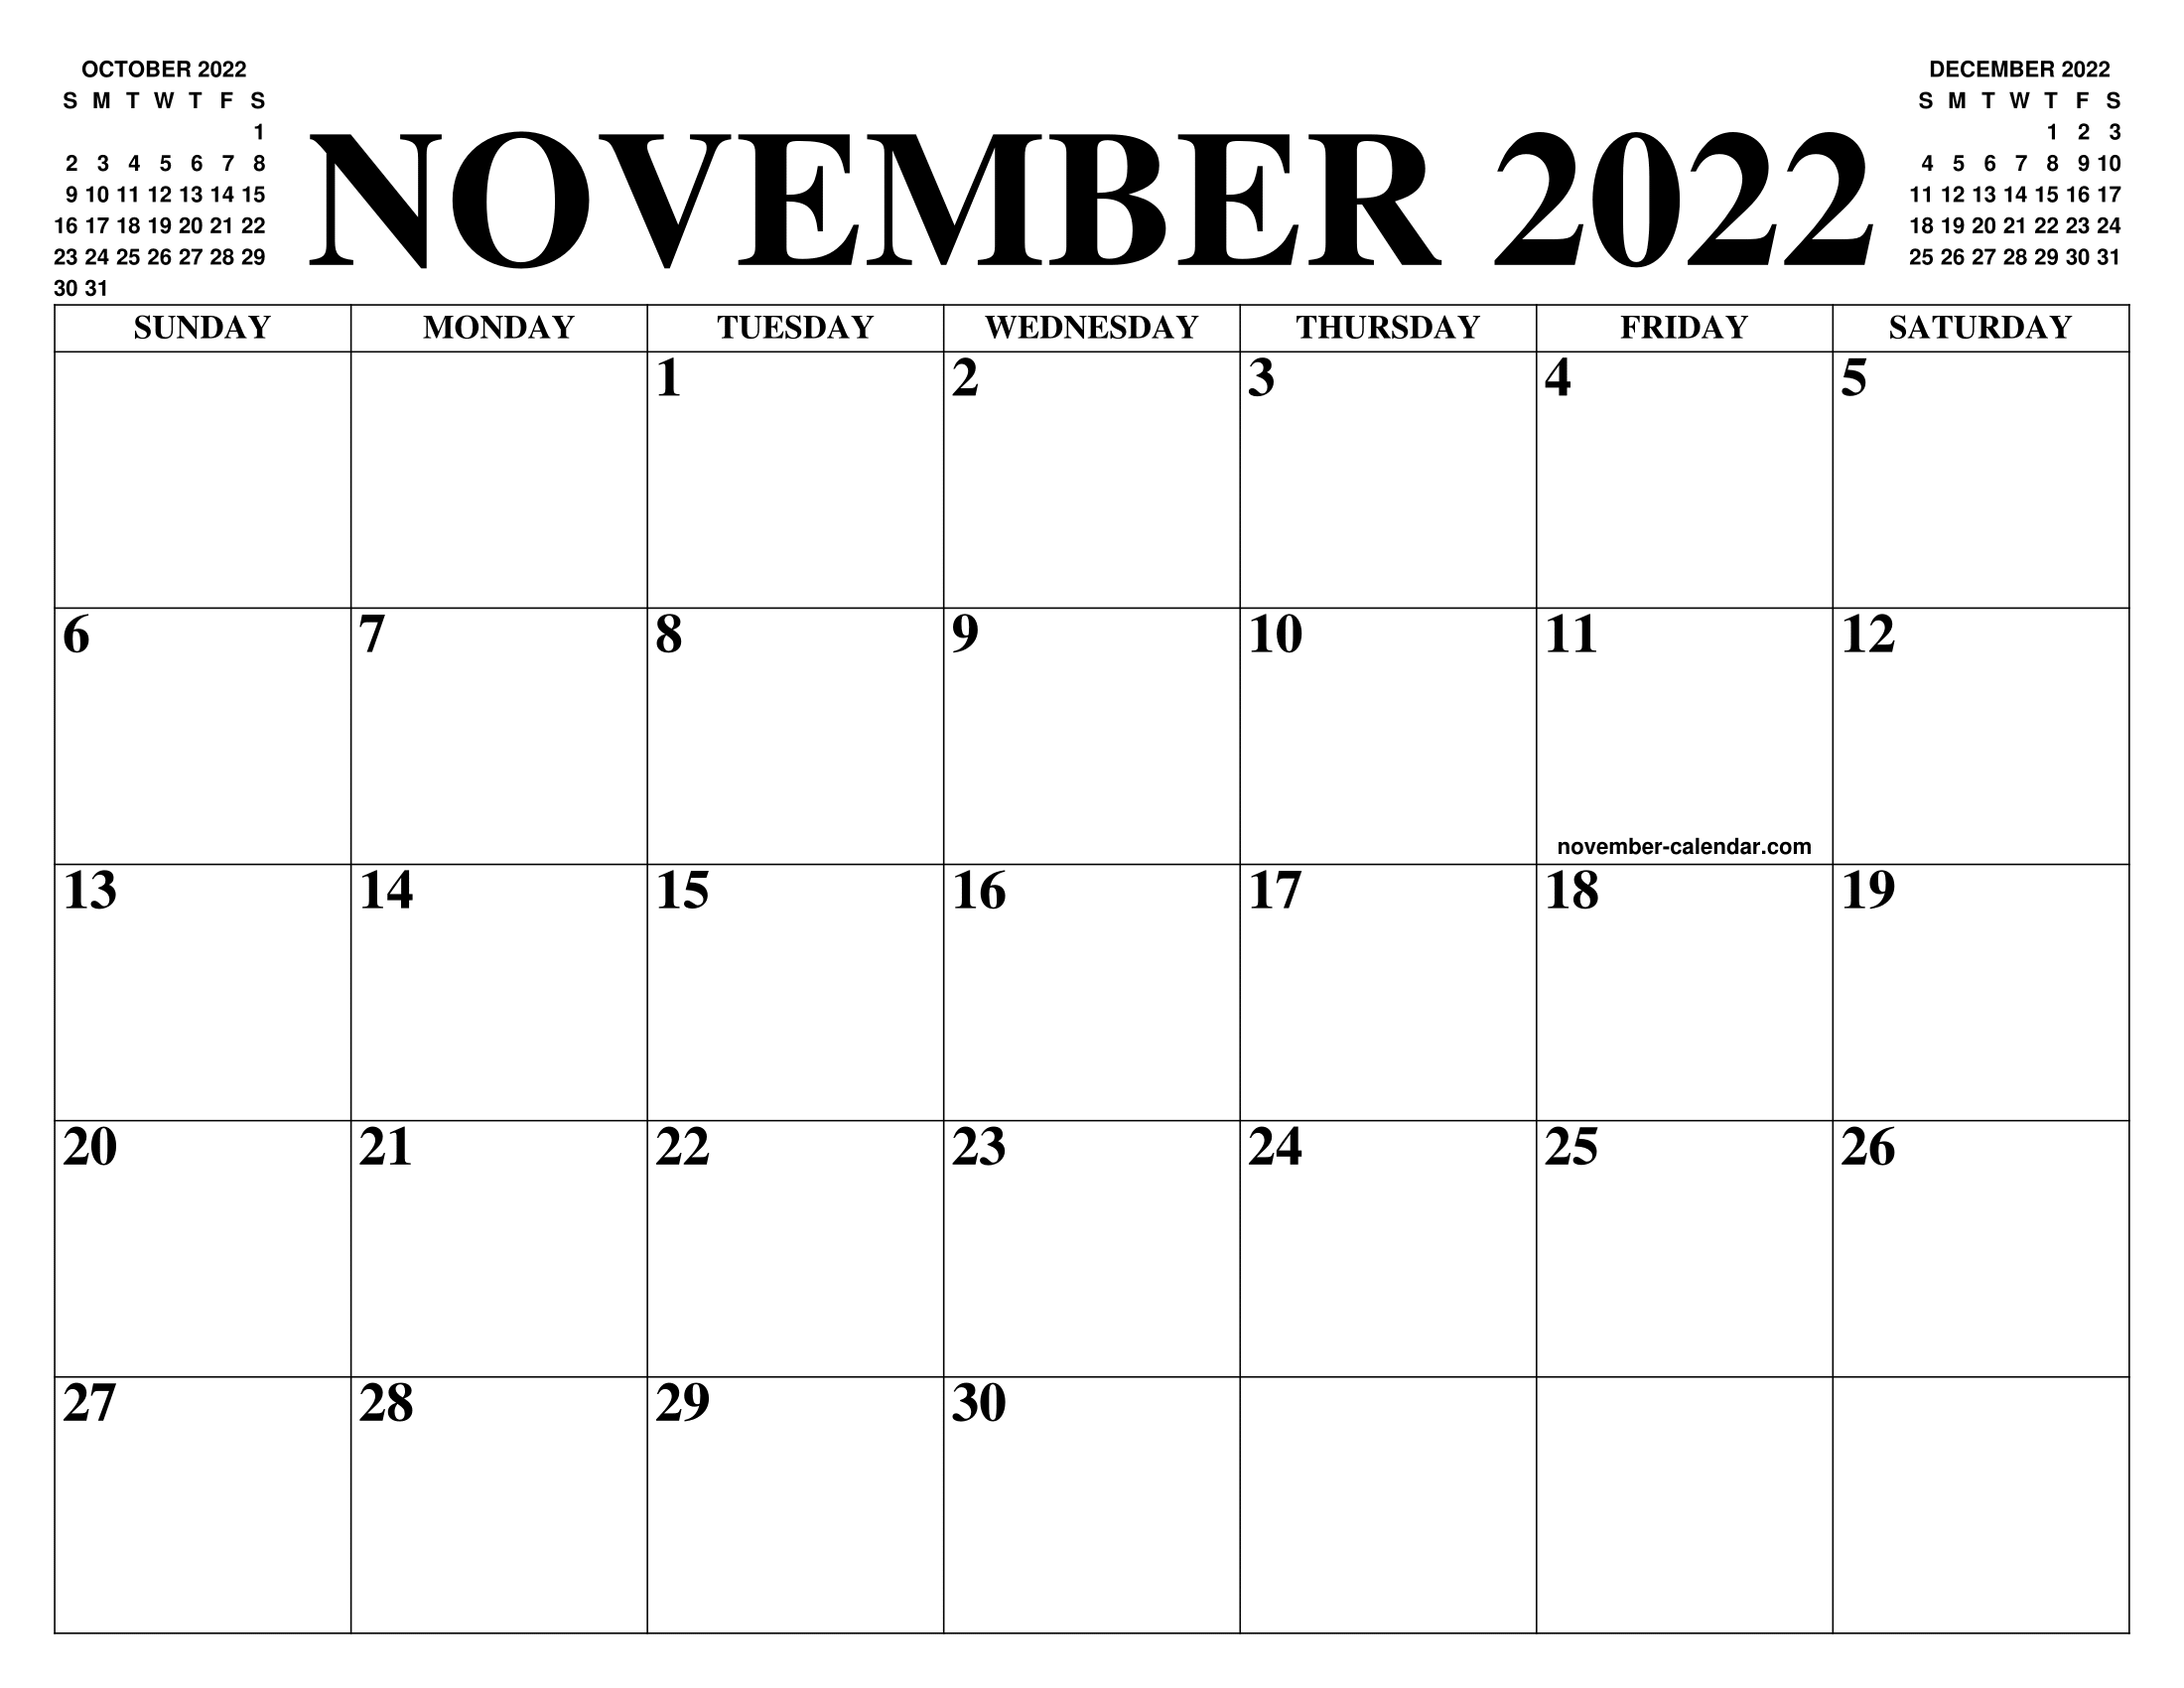 image regarding 2022 Calendar Printable known as NOVEMBER 2022 CALENDAR OF THE Thirty day period: No cost PRINTABLE NOVEMBER